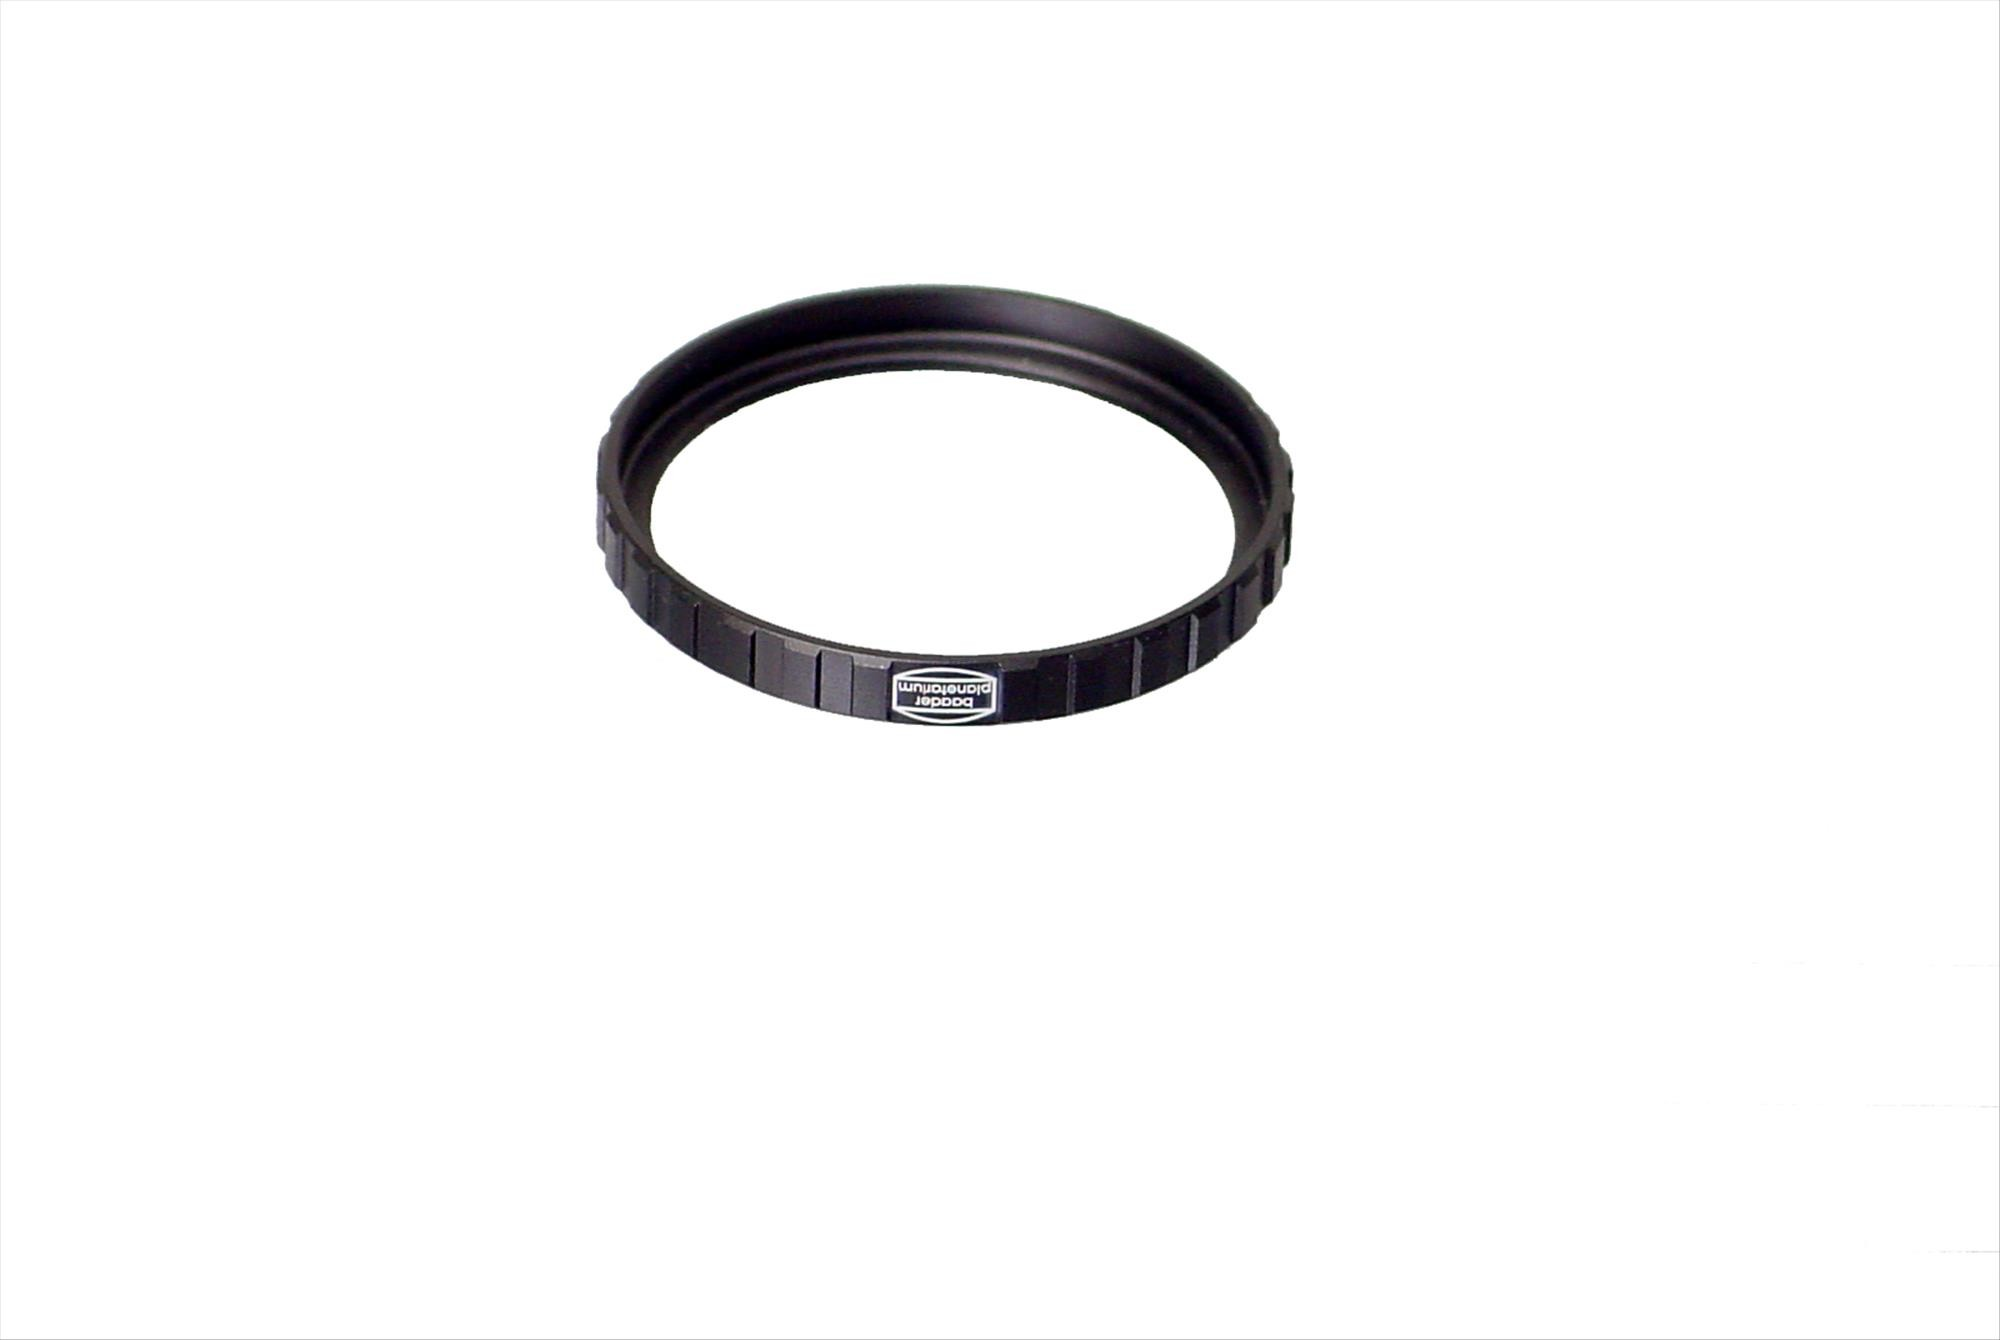 Baader T-2 Lock ring 2mm optical path length (T-2 part #35)